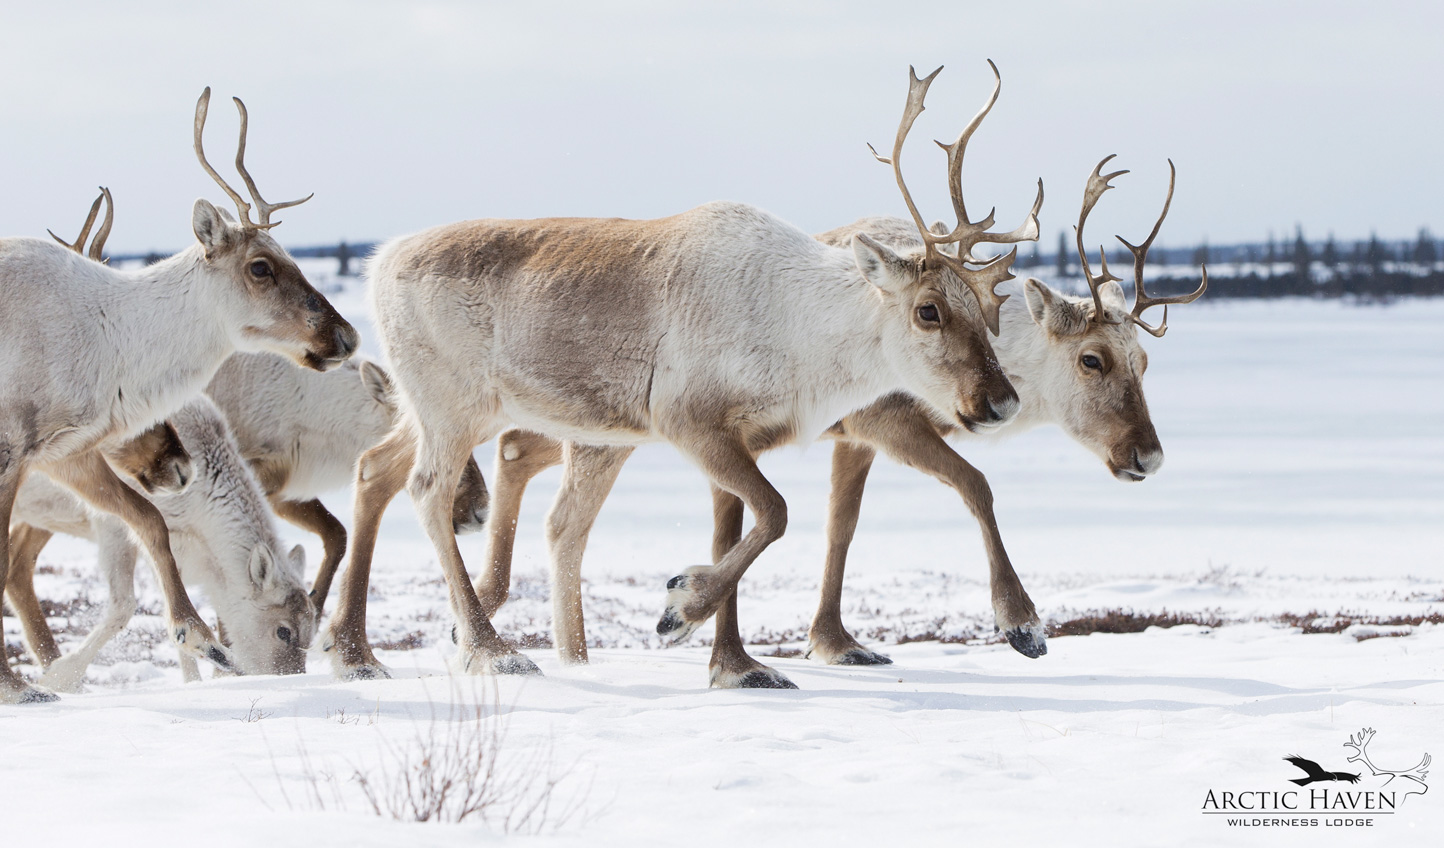 Walk alongside Arctic wildlife